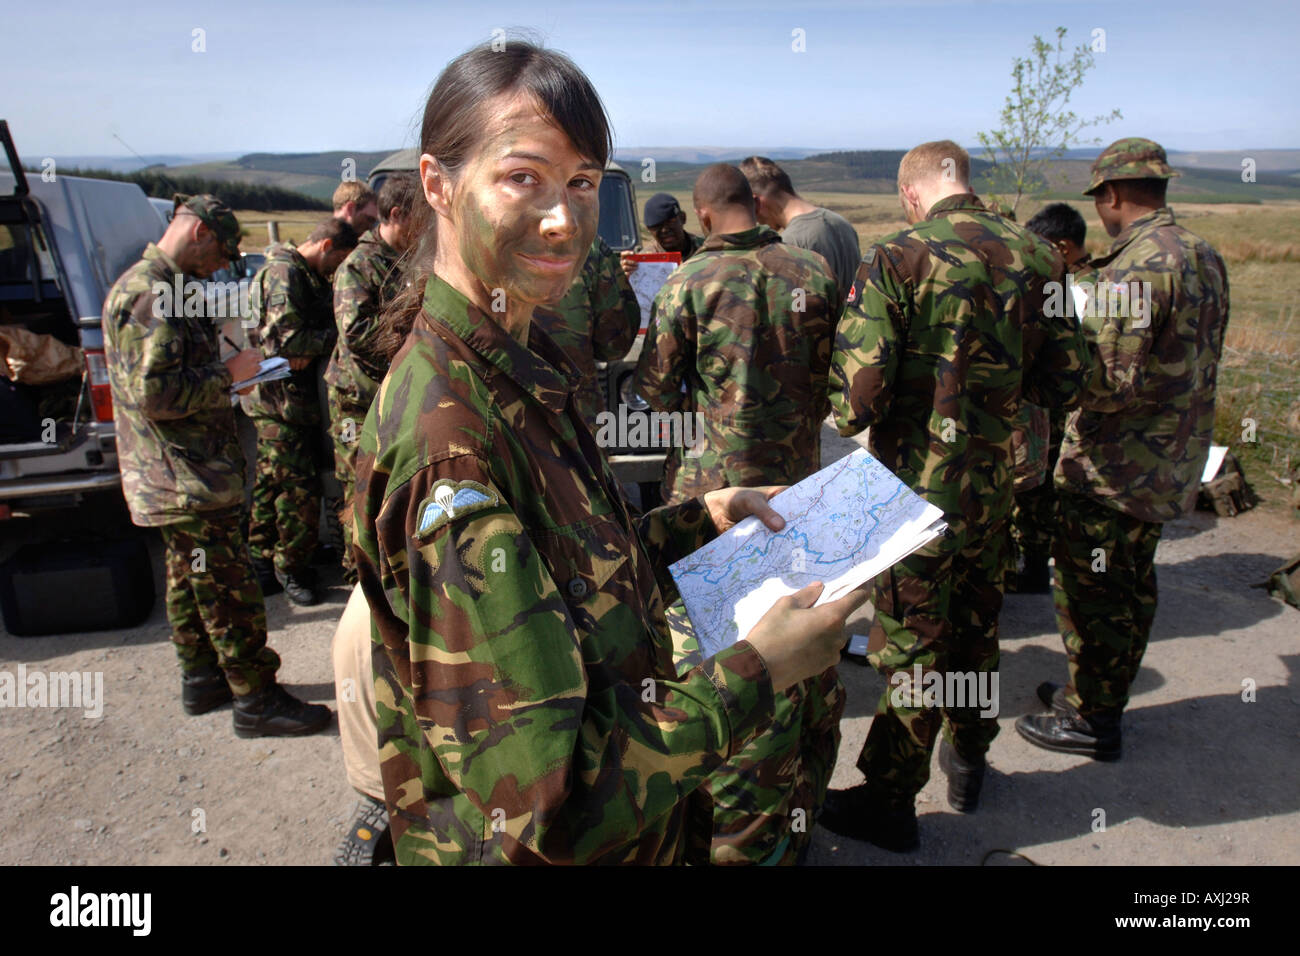 A BRITISH ARMY FEMALE RECRUIT CHECKS A MAP BEFORE A TRAINING STALK DURING A SNIPER COURSE IN BRECON WALES - Stock Image